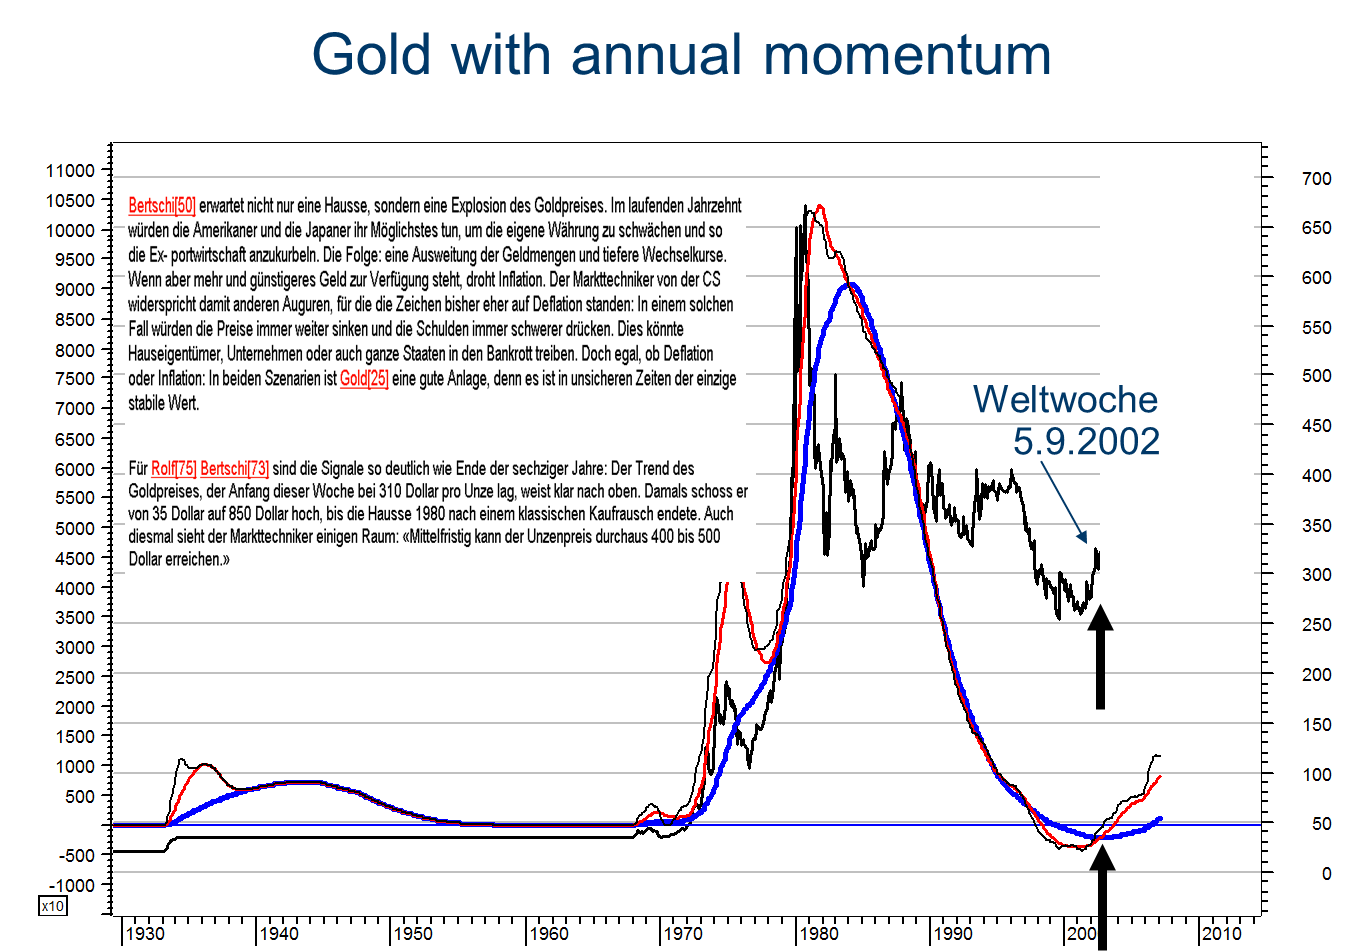 """In the Swiss Magazine """"Weltwoche"""" I projected that Gold has entered a new secular uptrend. This uptrend would push Gold higher of the coming decade. During this uptrend Gold would reach Levels above US$ 500 and possibly new all-time highs. Following my forecast, Gold surged to 1900 in August 2011. In other words, the SECULAR uptrend, which I identified based on my Momentum Indicators, Gold rose by over 500%.  The chart below is from a series of presentations, which I gave in early 2012. I did identify the pattern in Gold as the long-term TOP, which should be folllowed by a long-term bear market. As you are well aware of did the Gold price enter a bear market in 2013."""